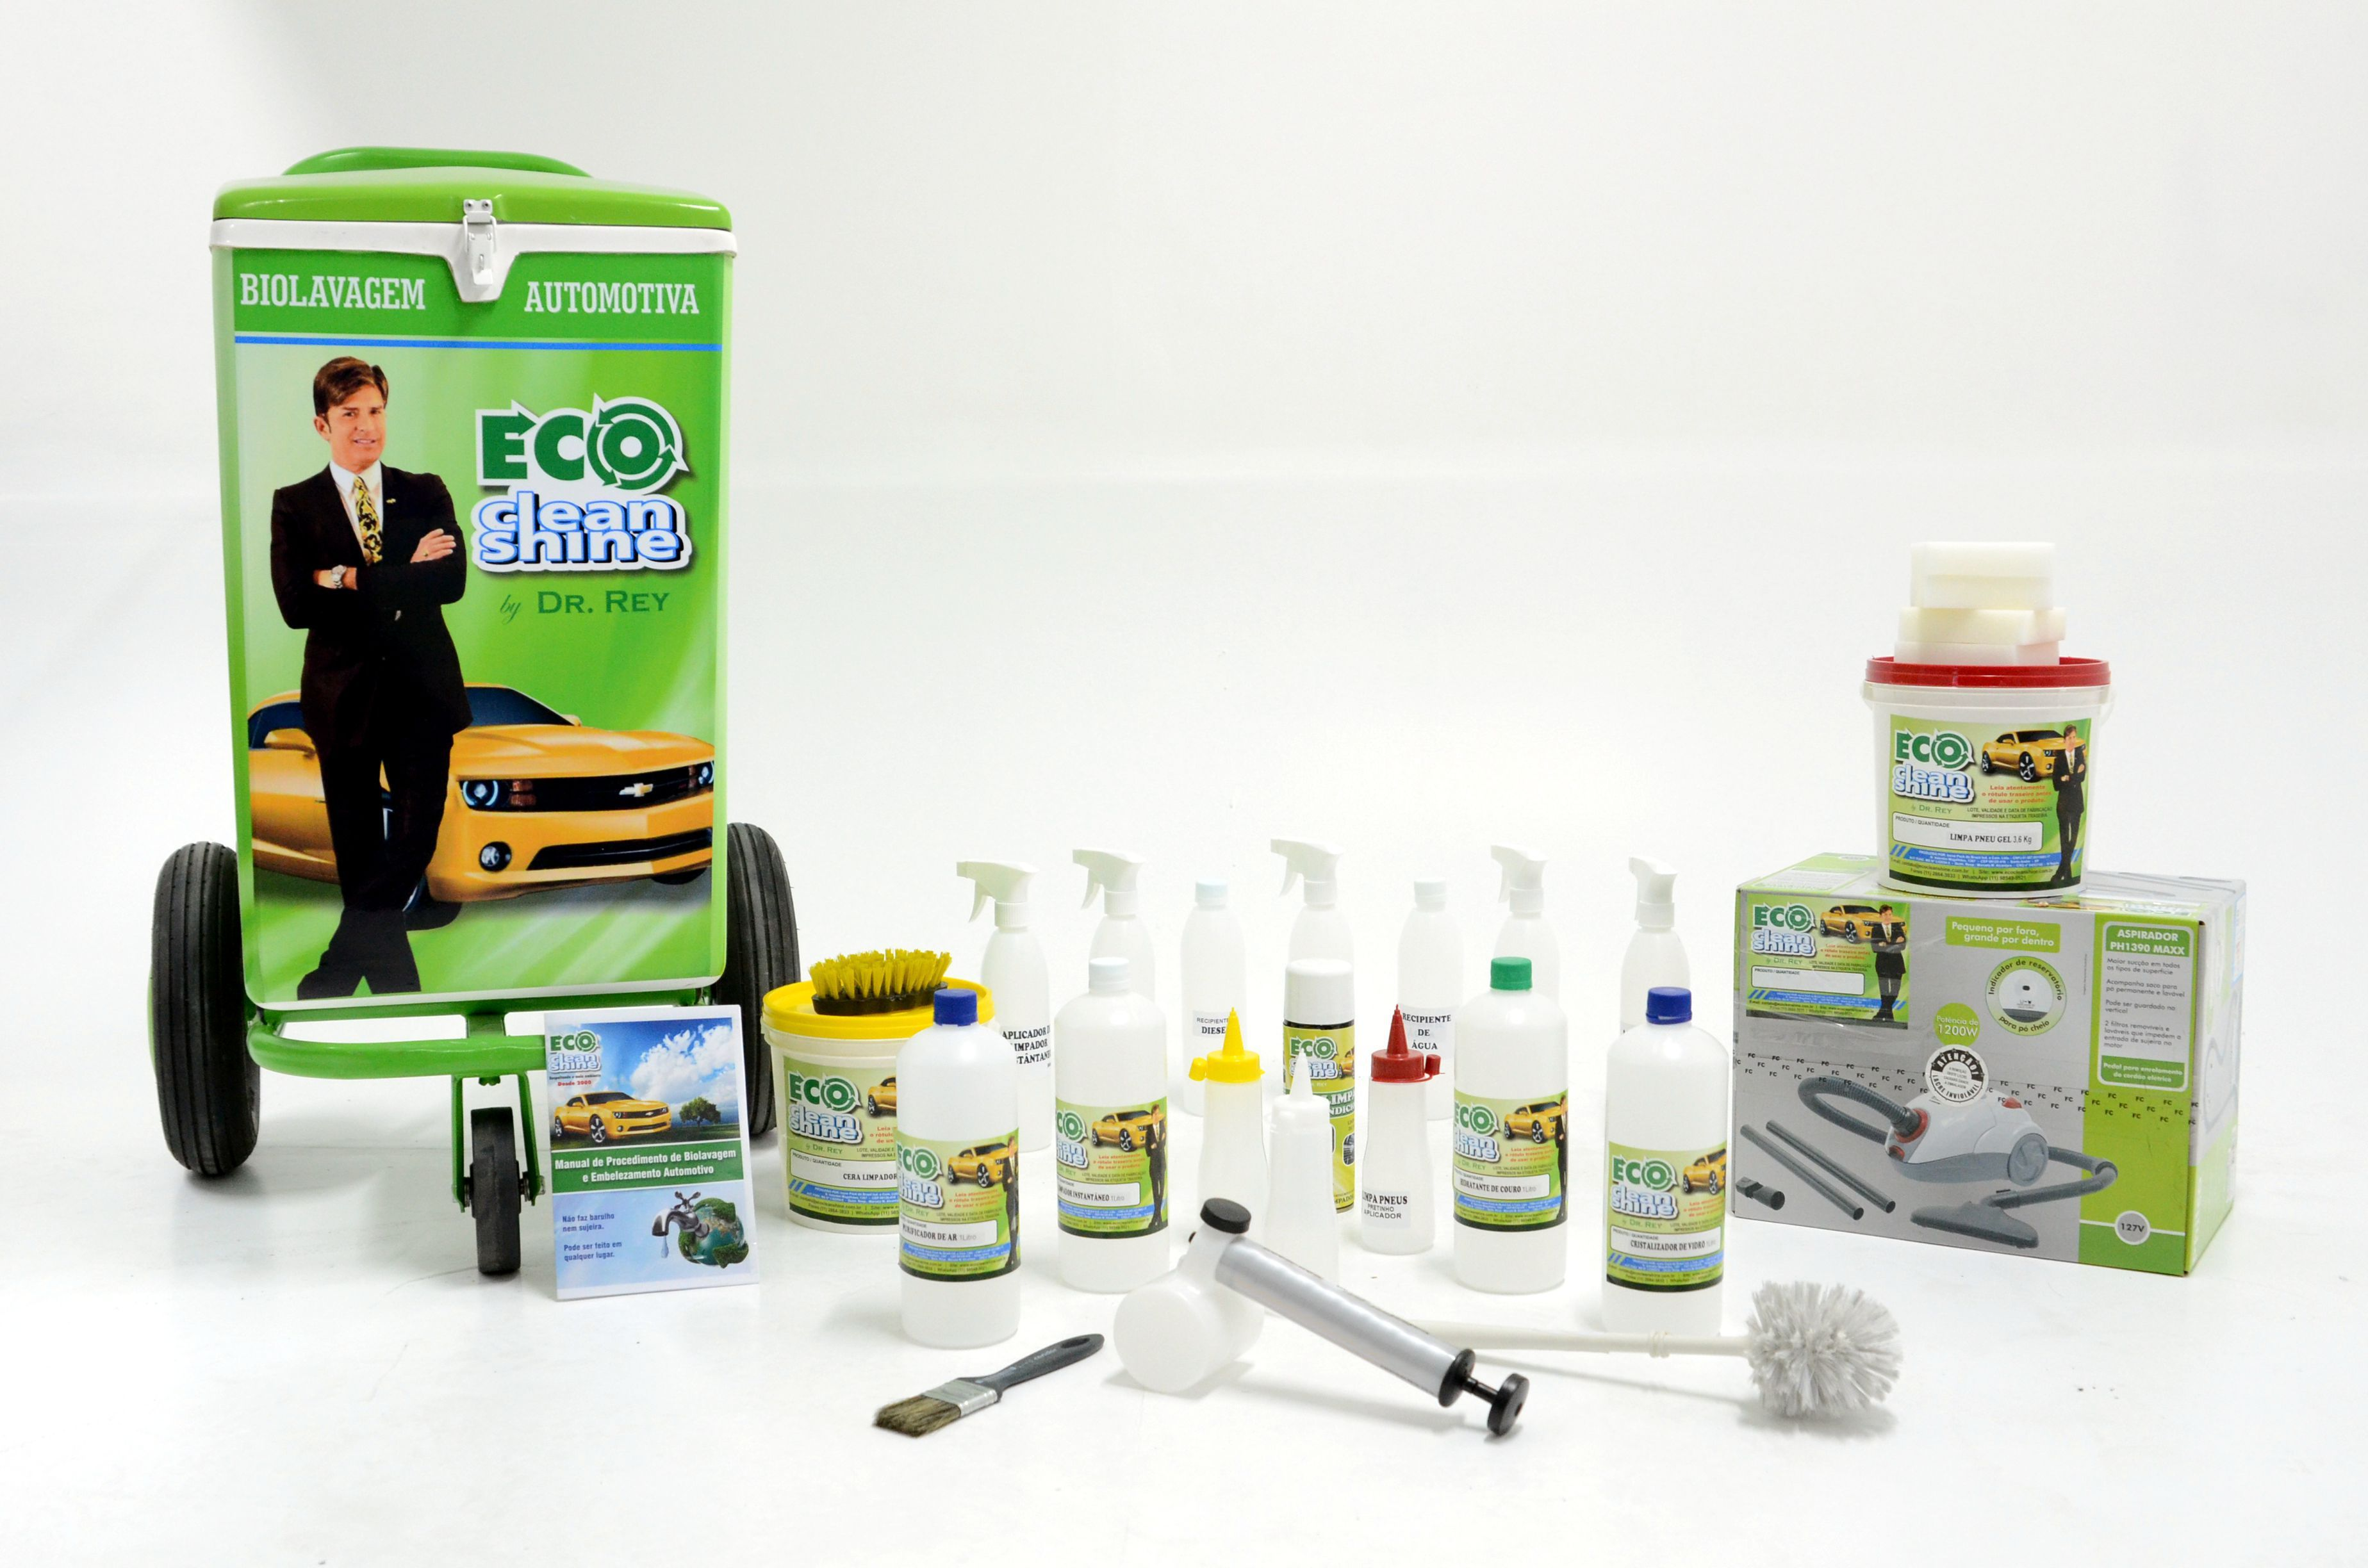 Kit 1 Completo Eco Clean Shine Dr Rey Valor R 4999 00 Gratis 1